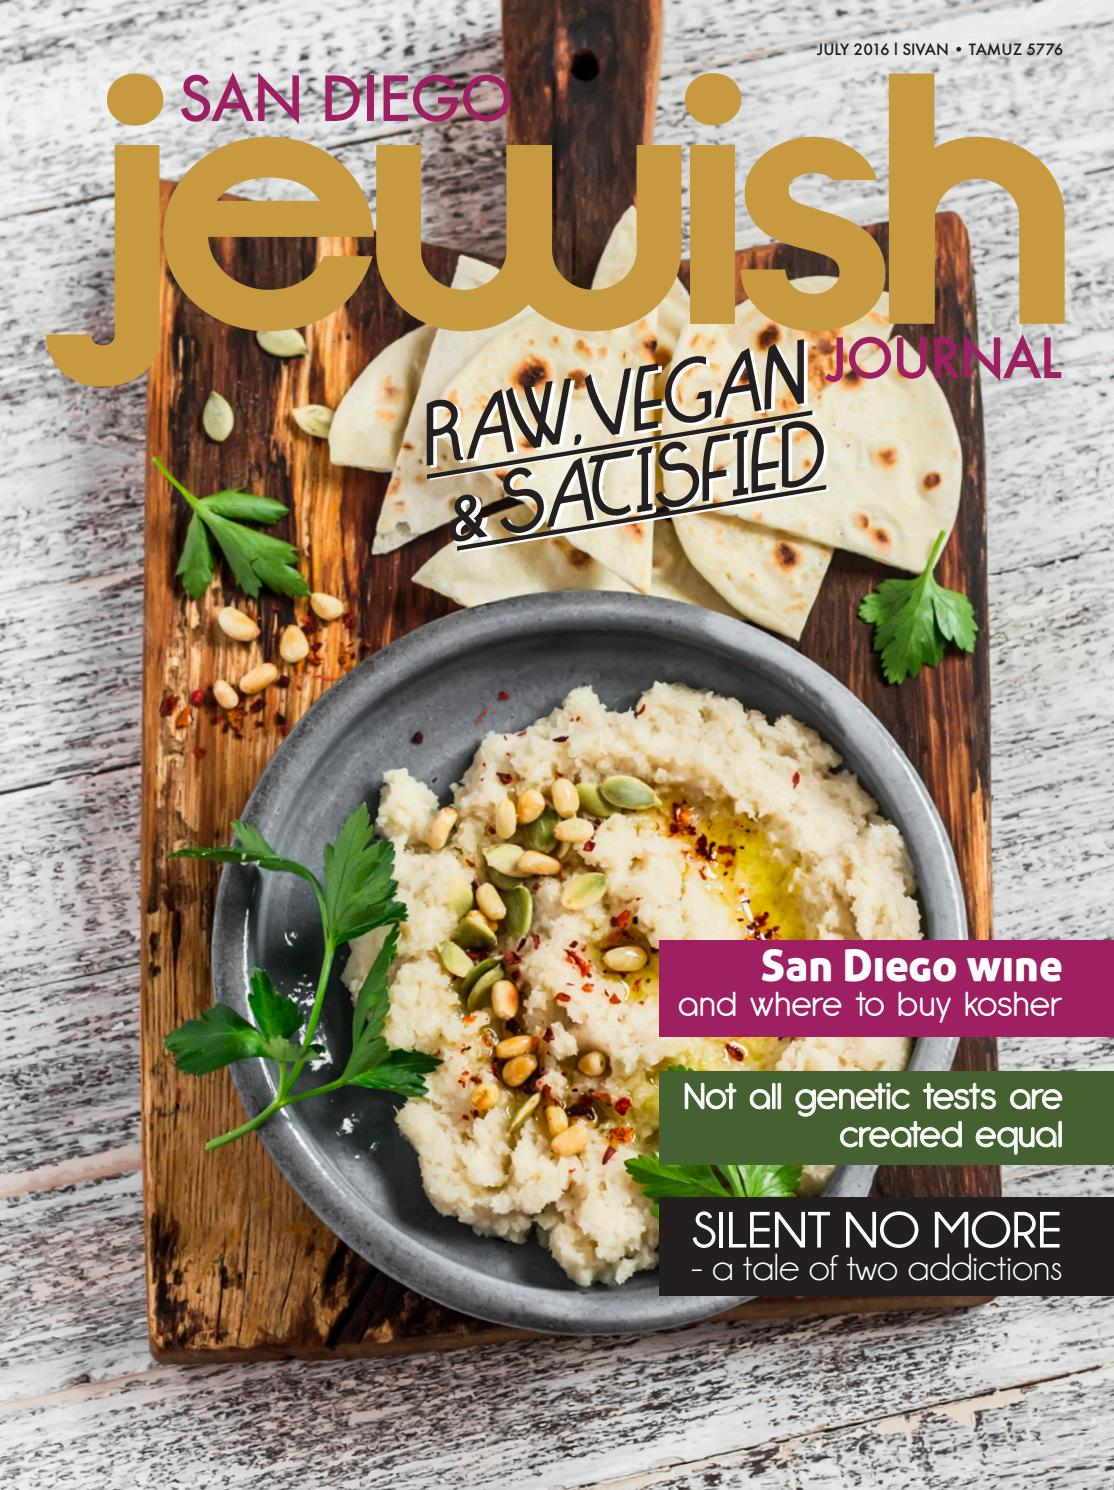 San Diego Jewish Journal July 2016 By San Diego Jewish Journal Issuu